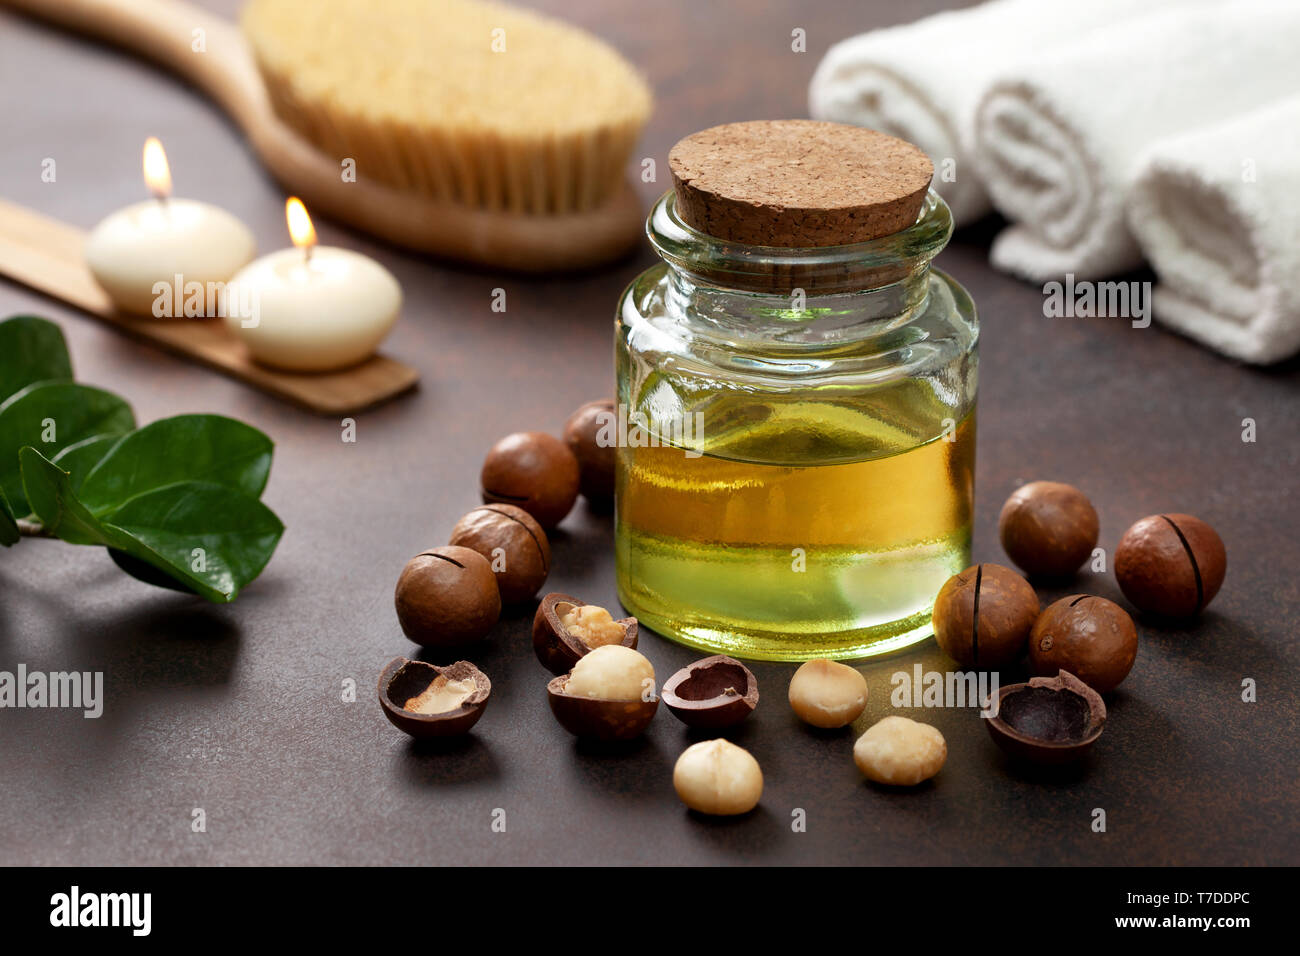 macadamia oil in a glass bottle, macadamia nuts, objects for spa on a brown background Stock Photo